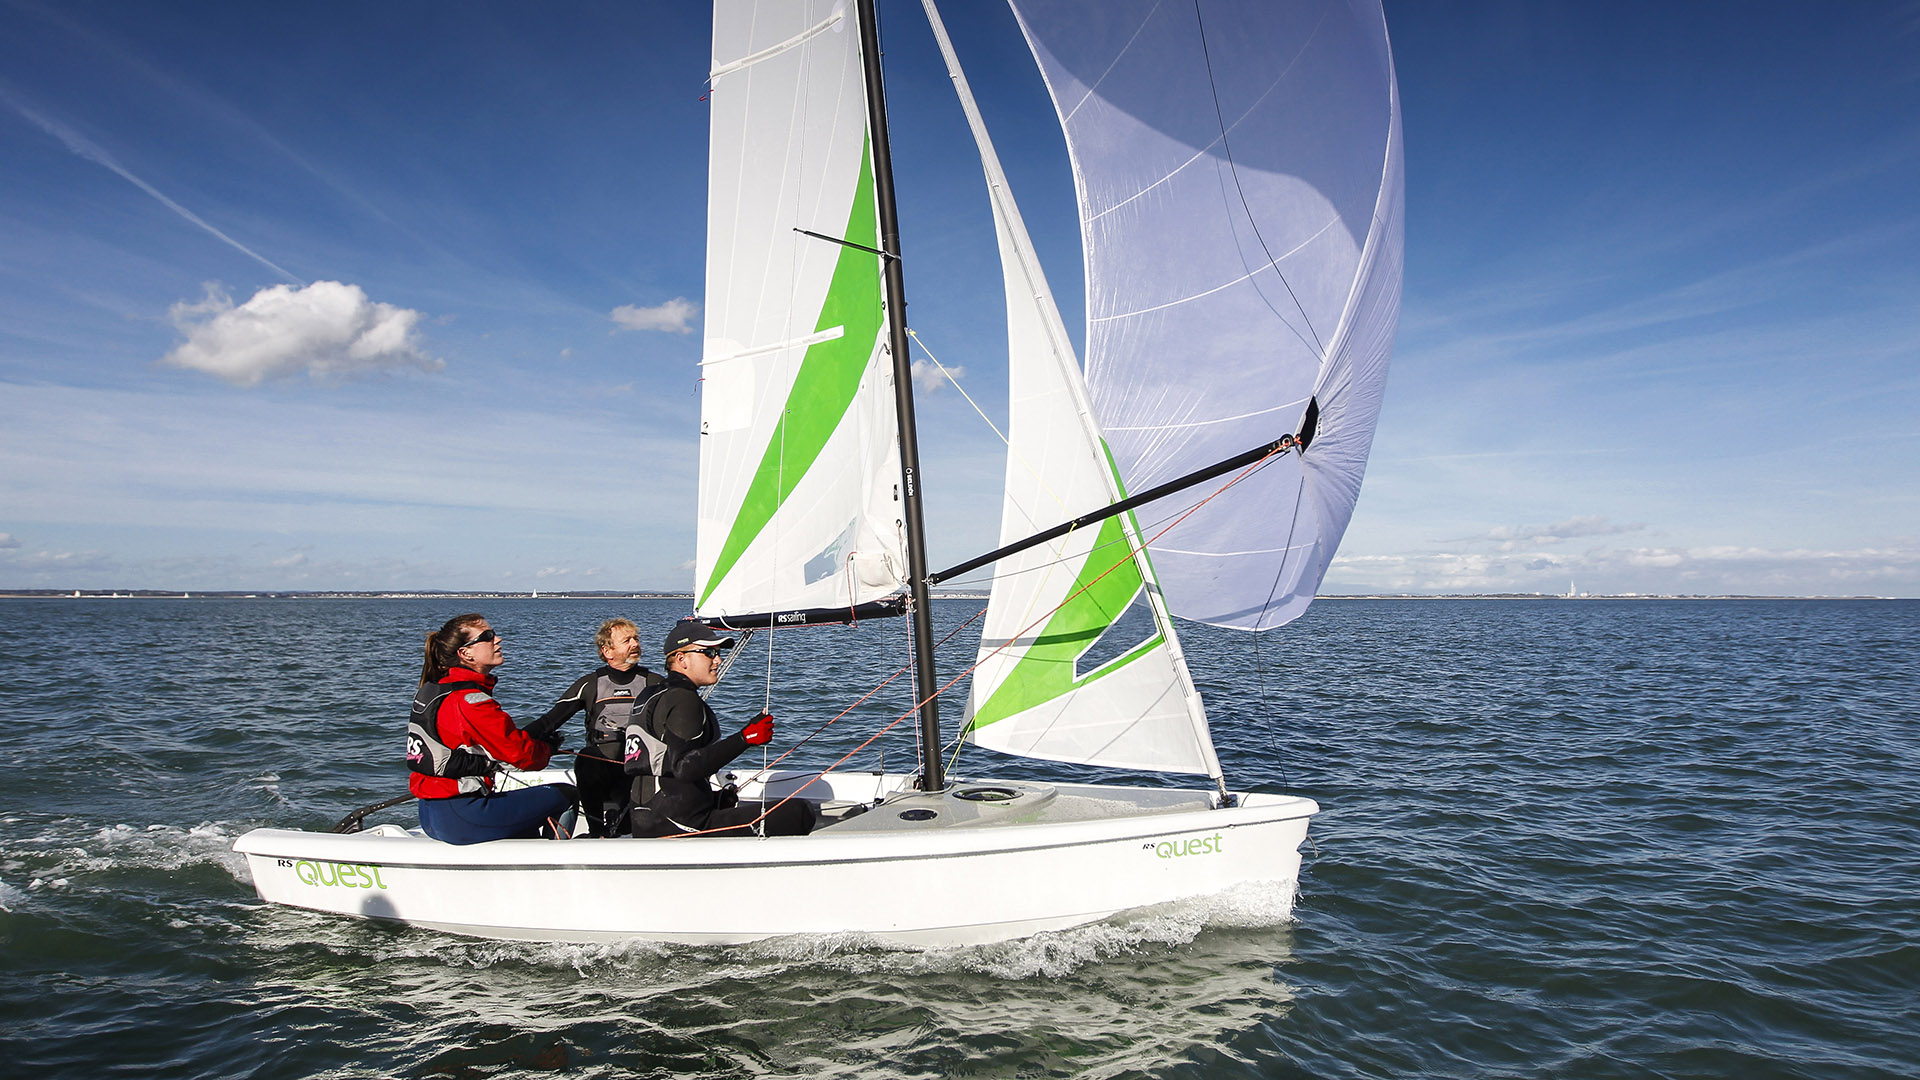 rs quest –the best-seller for training or family sailing